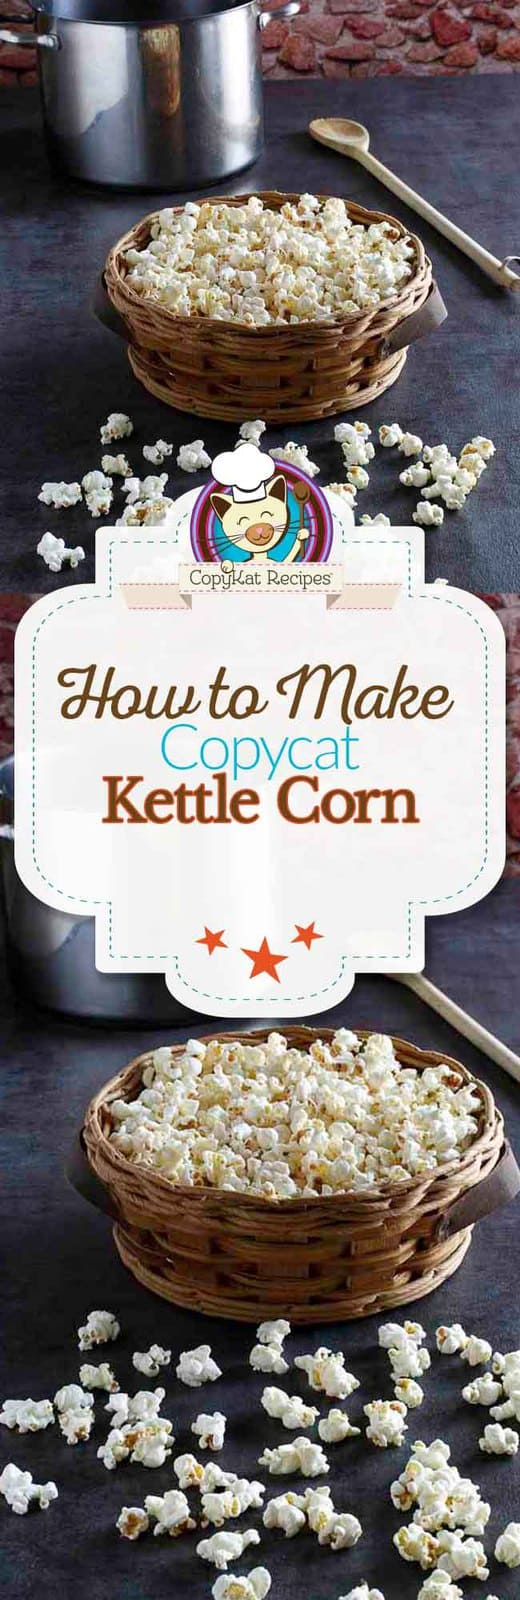 You can make kettle corn from scratch, its easy to do.  Step by step instructions on how to make delicious kettle corn.